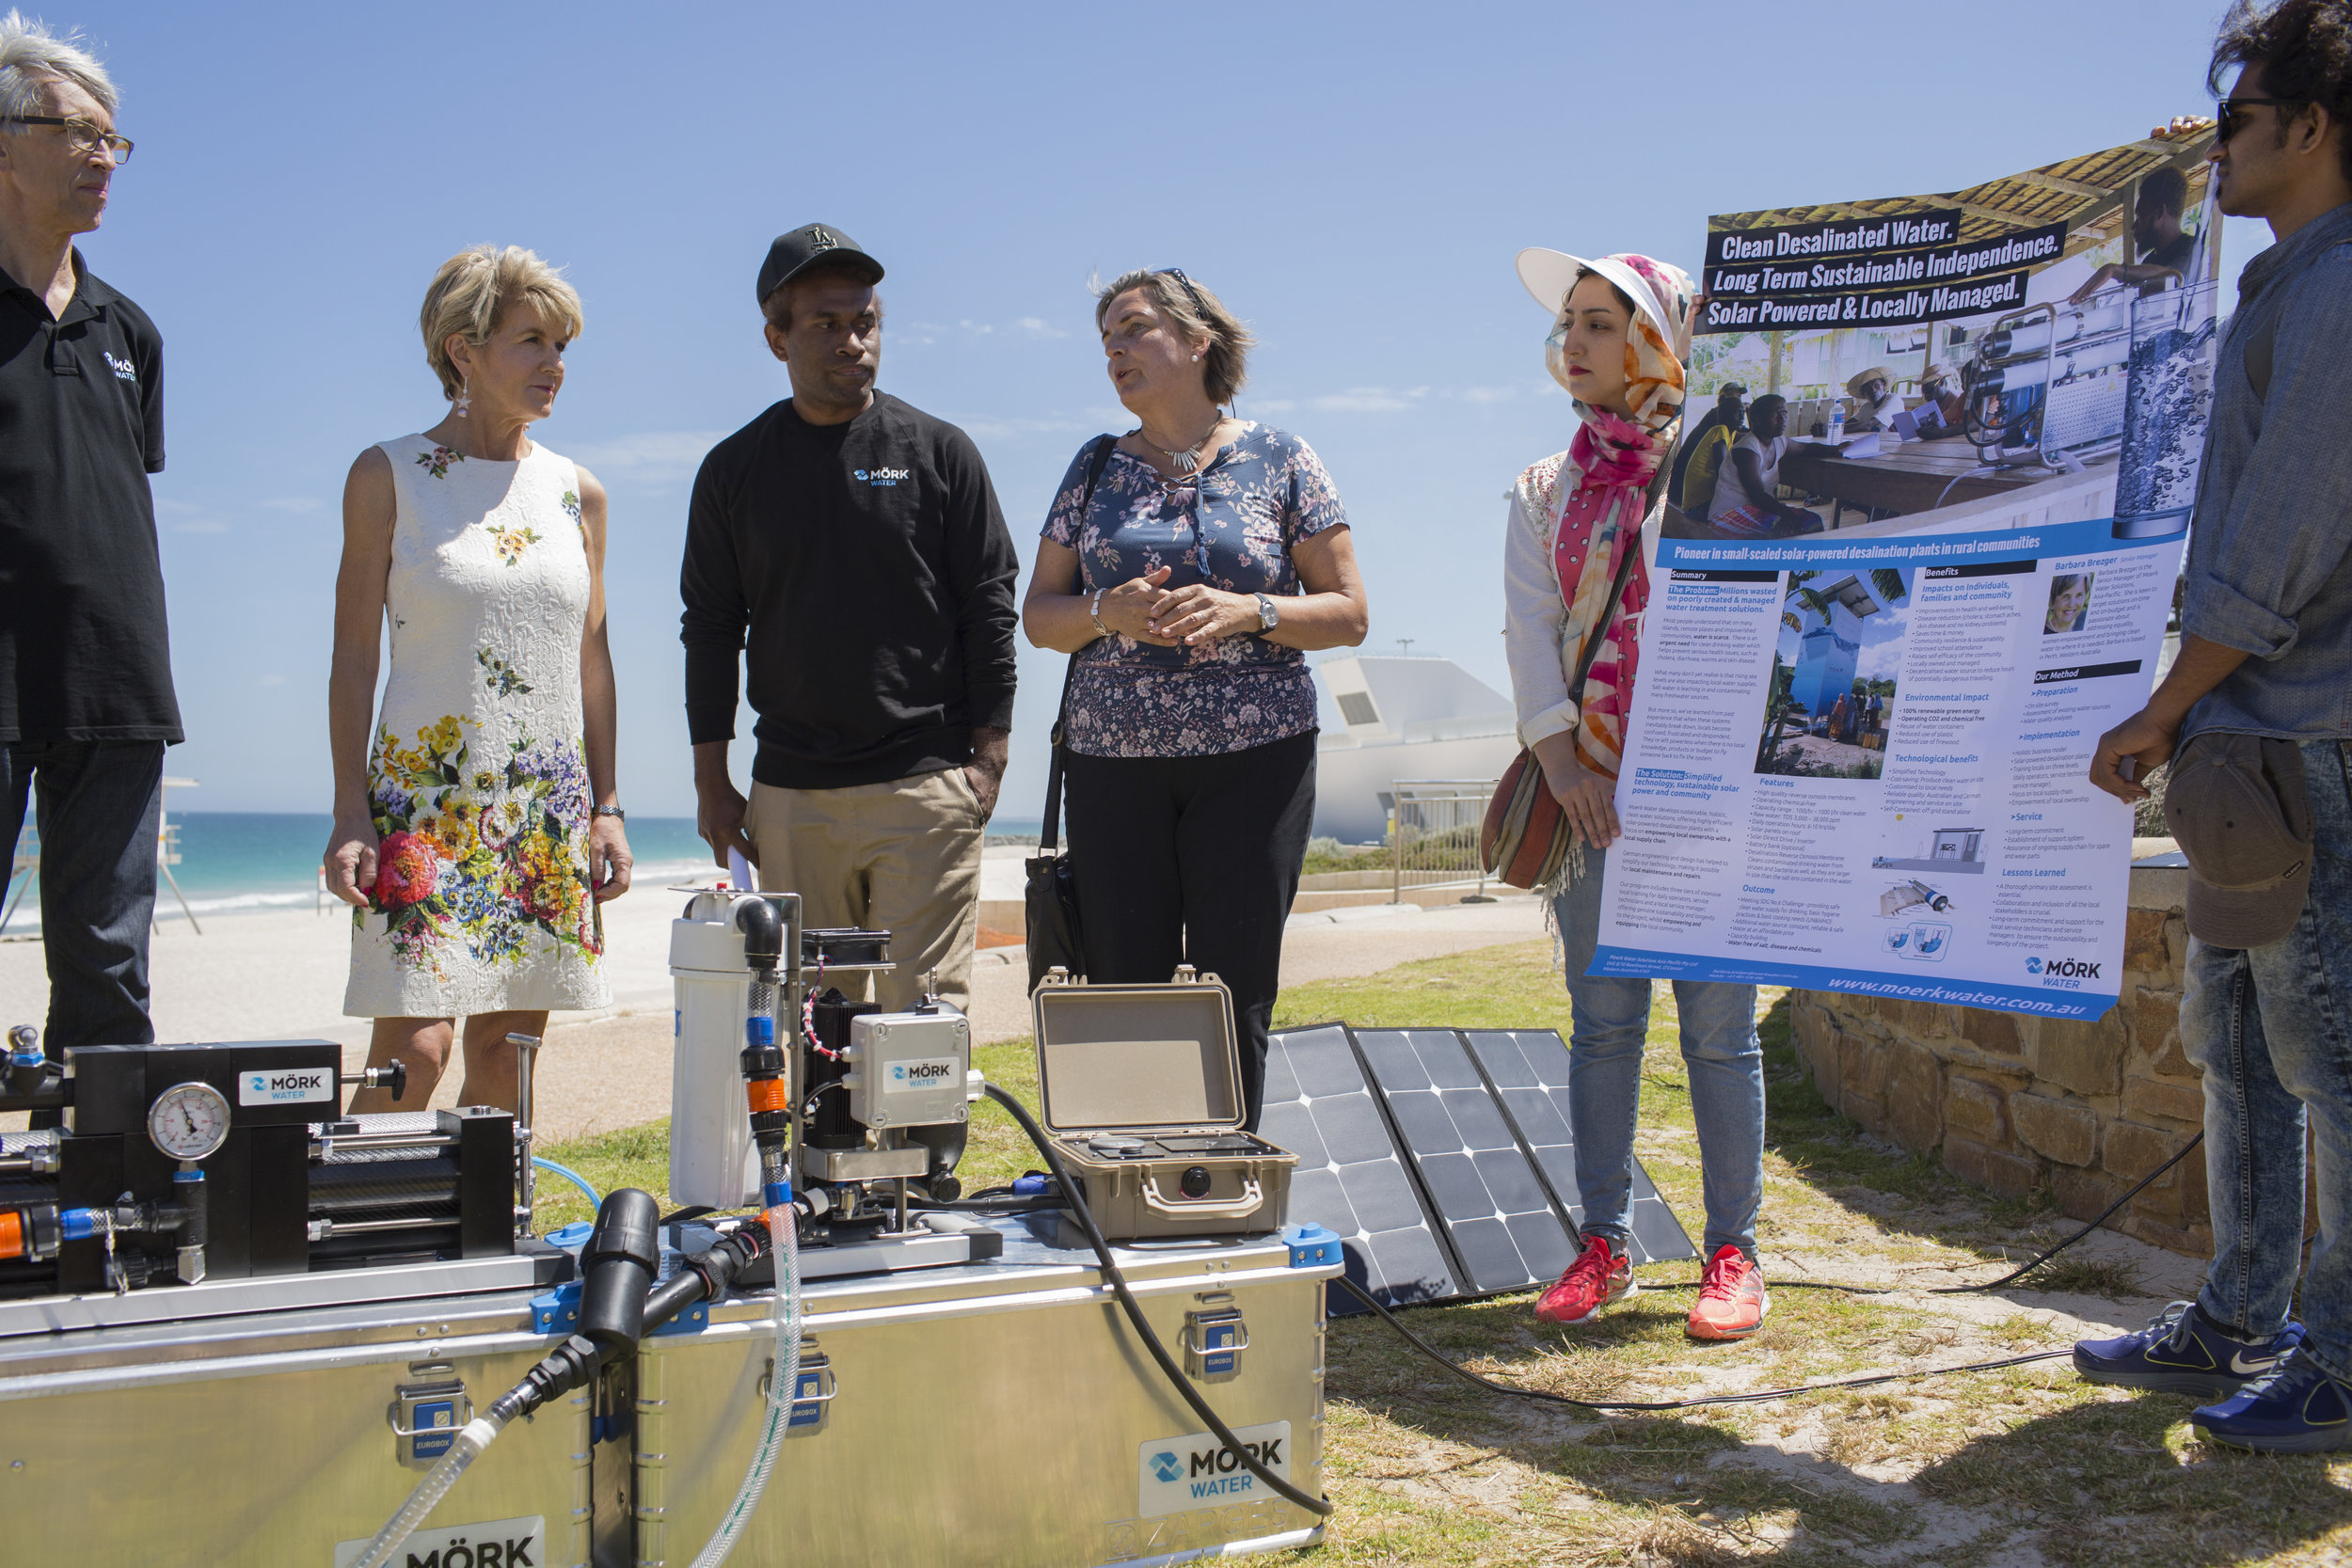 The Hon Julie Bishop listens attentively to Moerk Water's demonstration